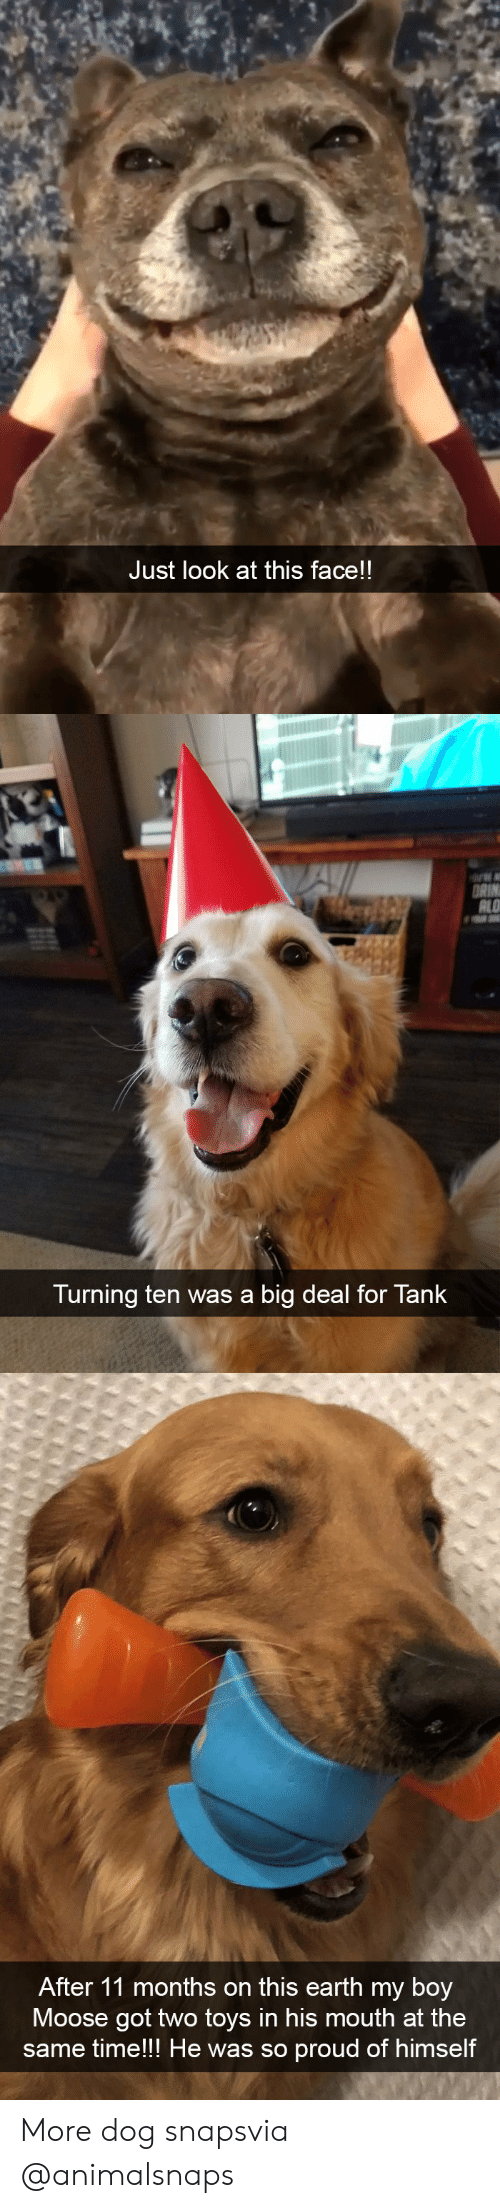 This Face: Just look at this face!!   ALO  Turning ten was a big deal for Tank   After 11 months on this earth my boy  9  Moose got two toys in his mouth at the  mell the was so proud of himse  same time!!! He was so proud of himself More dog snapsvia @animalsnaps